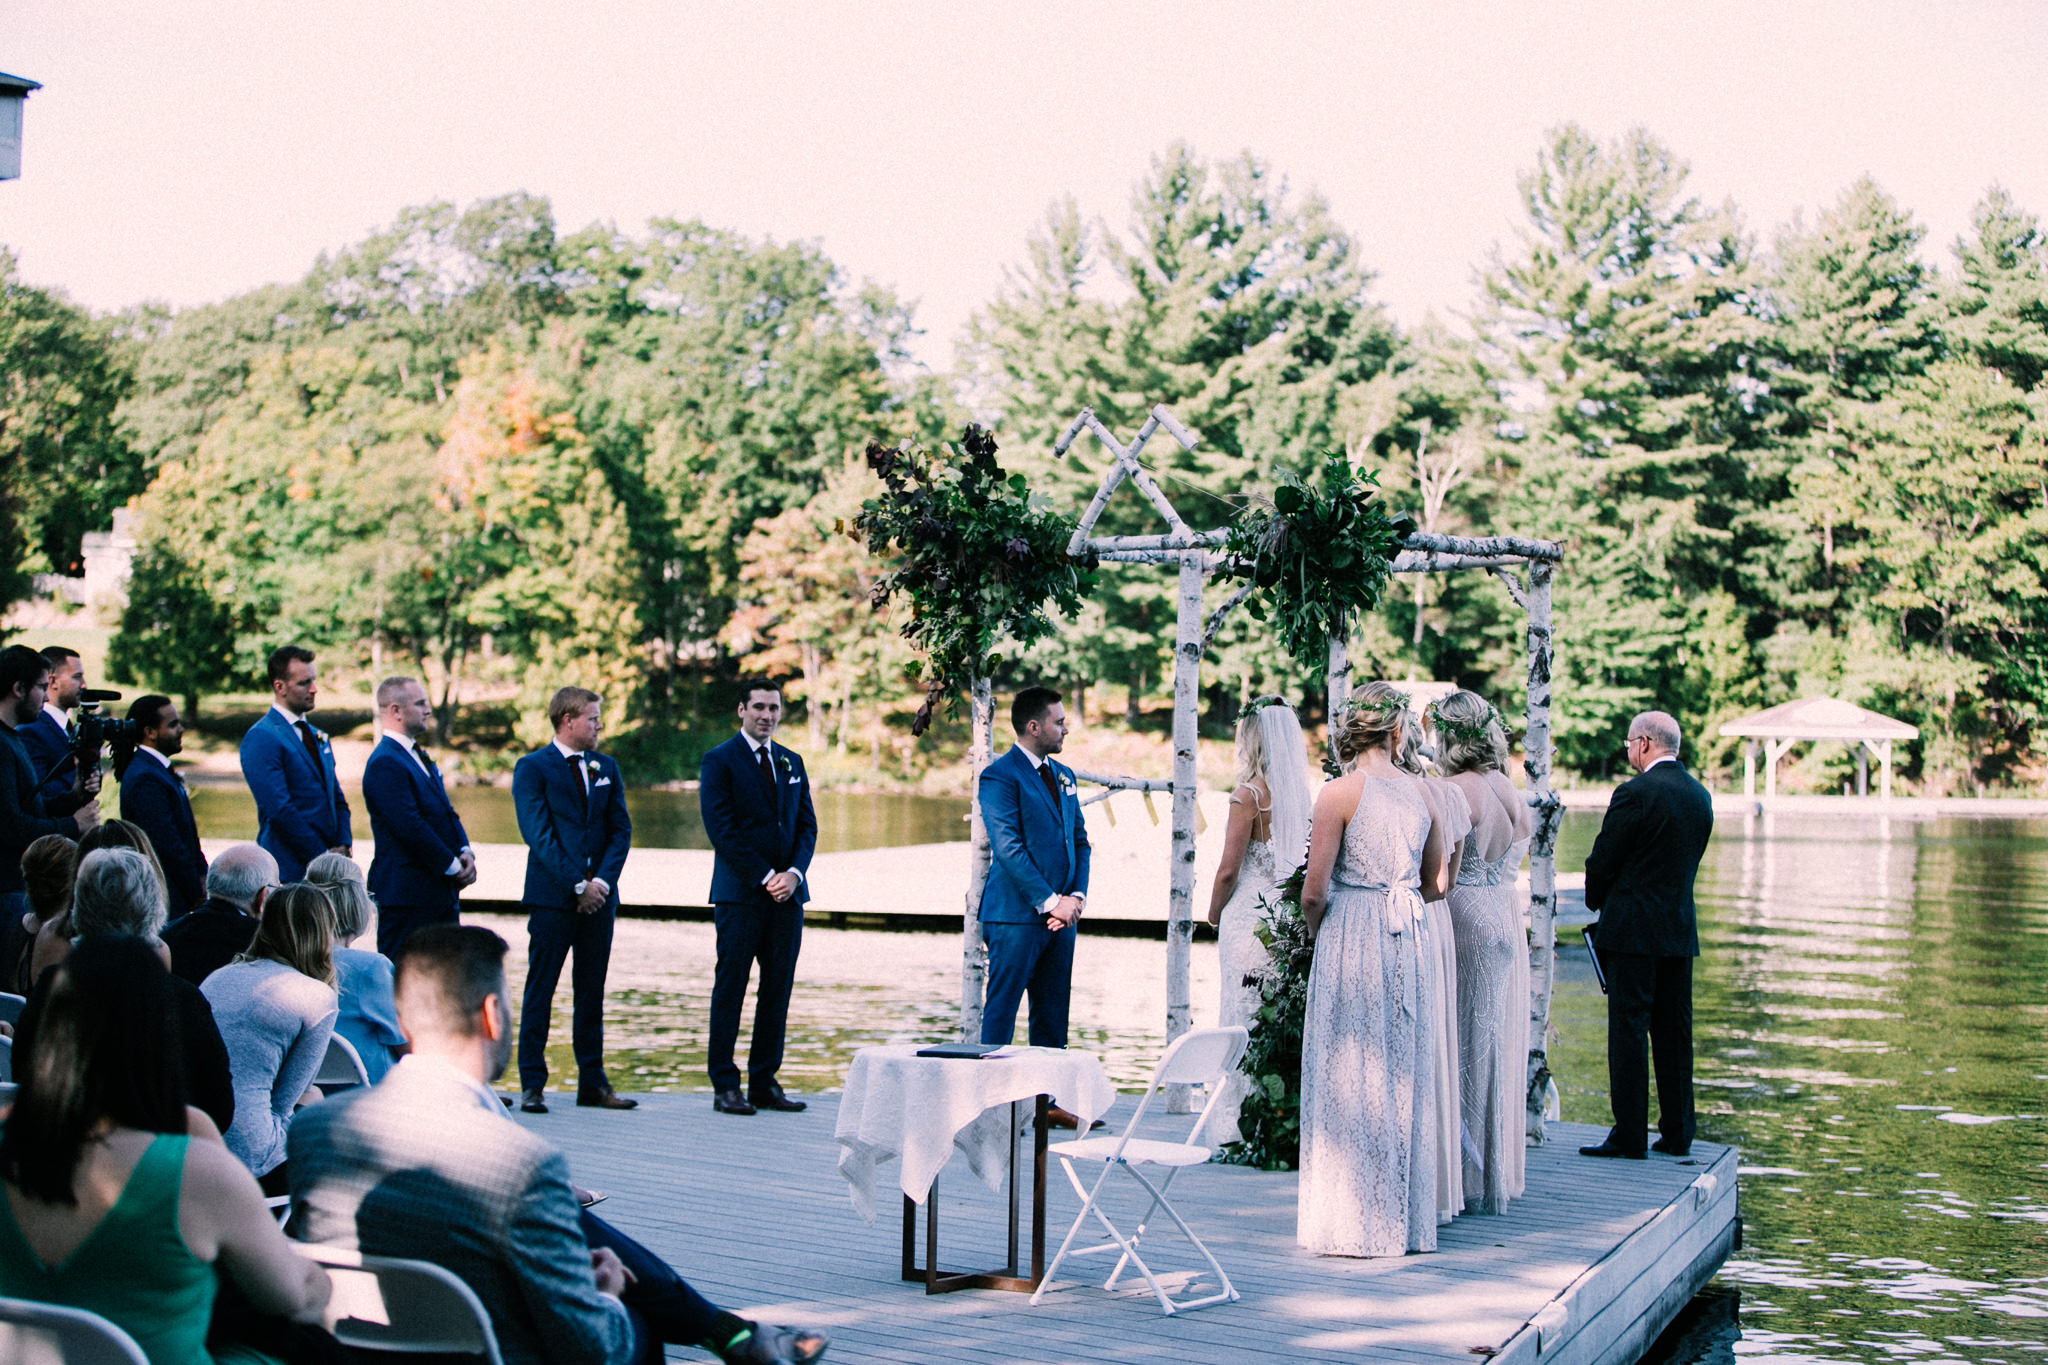 Muskoka lakeside wedding at Port Cunnington Lodge by Max Wong Photo (48)